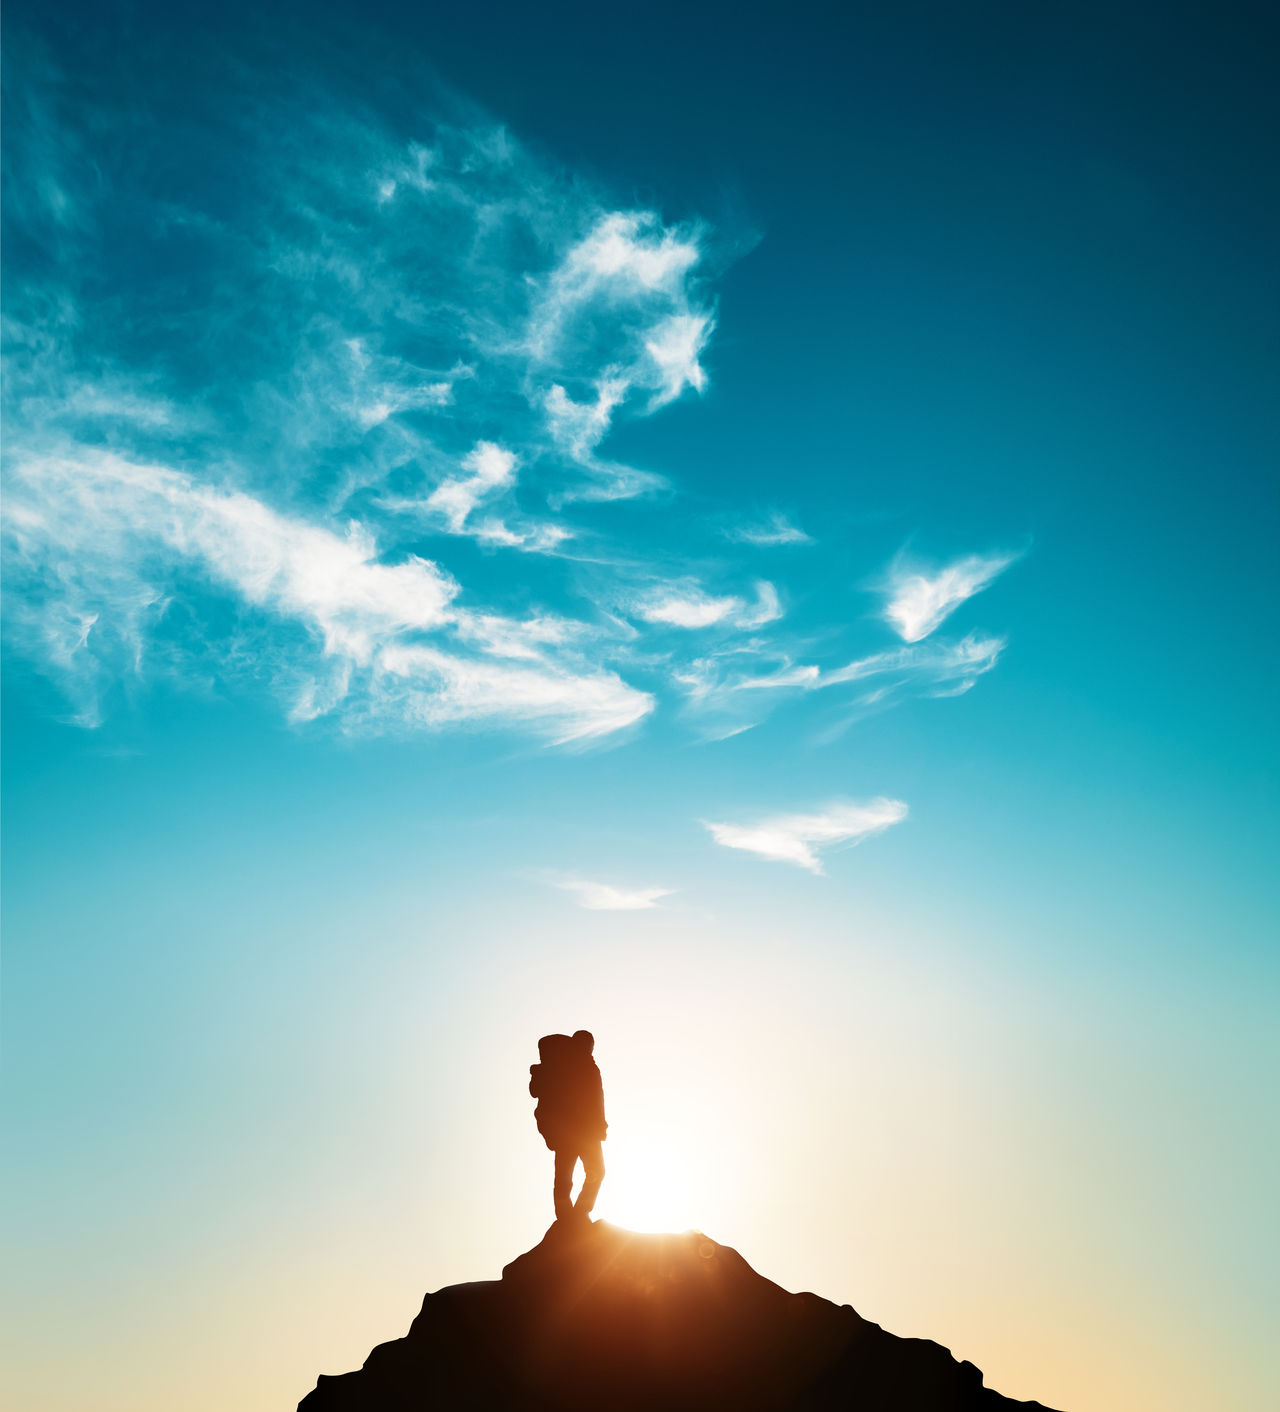 Adult Adults Only Adventure Beauty In Nature Cloud - Sky Day Human Body Part Leisure Activity Looking At View Men Mountain Nature One Man Only One Person Only Men Outdoors People Relaxation Scenics Sky Sunset